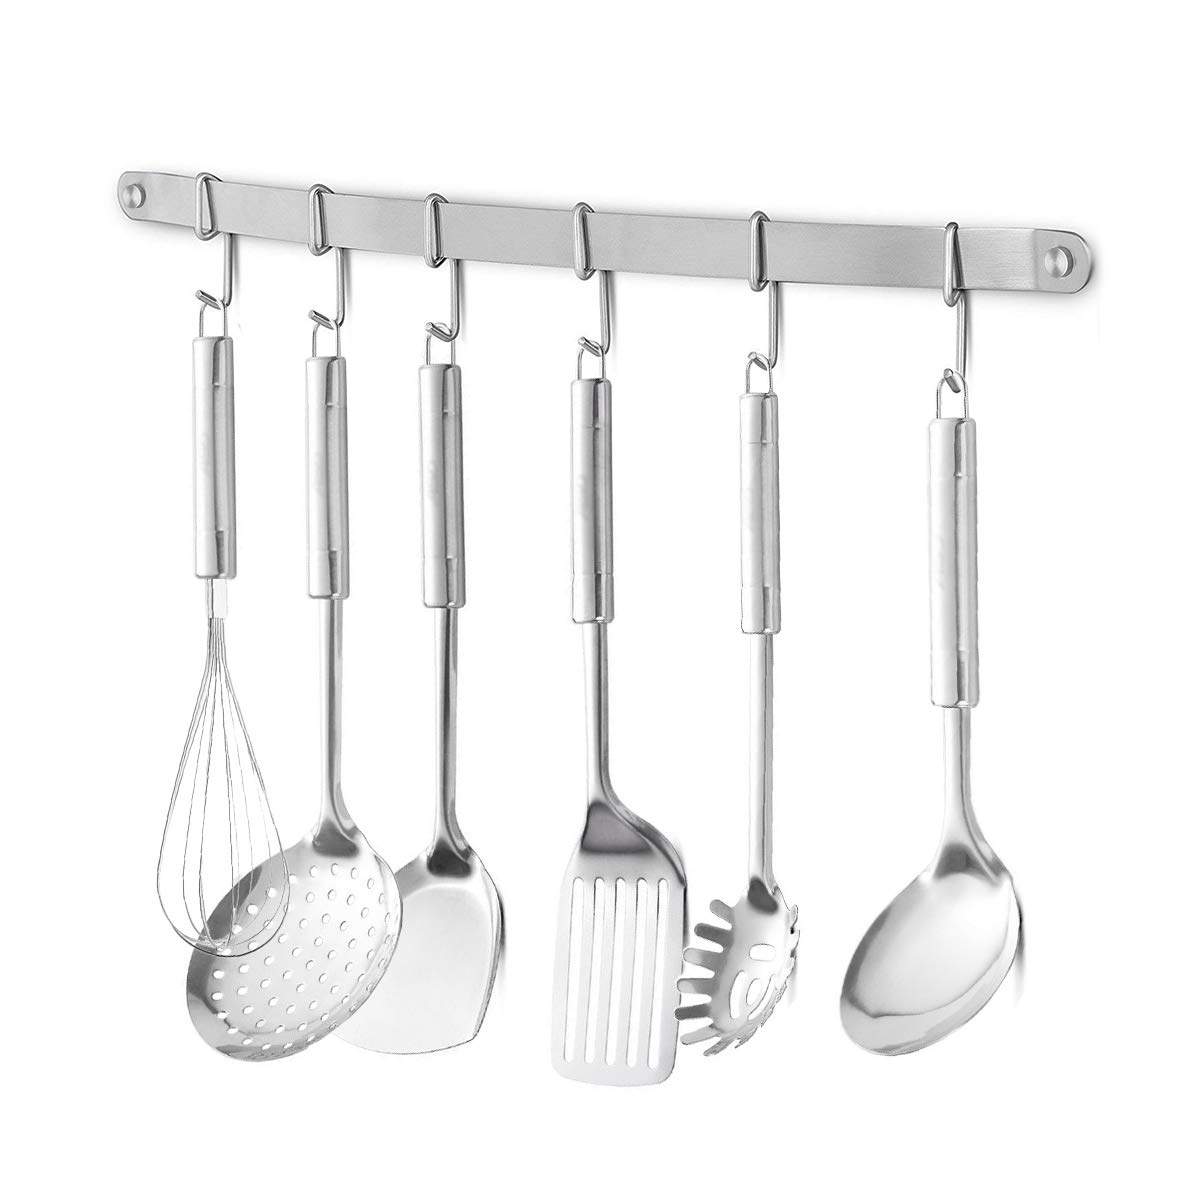 eForwish Stainless Steel Kitchen Tools Utensil Holder Hanging Rack Organize Pots Pans Kitchen Knife Gadgets On Wall Mounted Hanger Bar Rail Under Cabinet Shelf (6 Hook,17'')